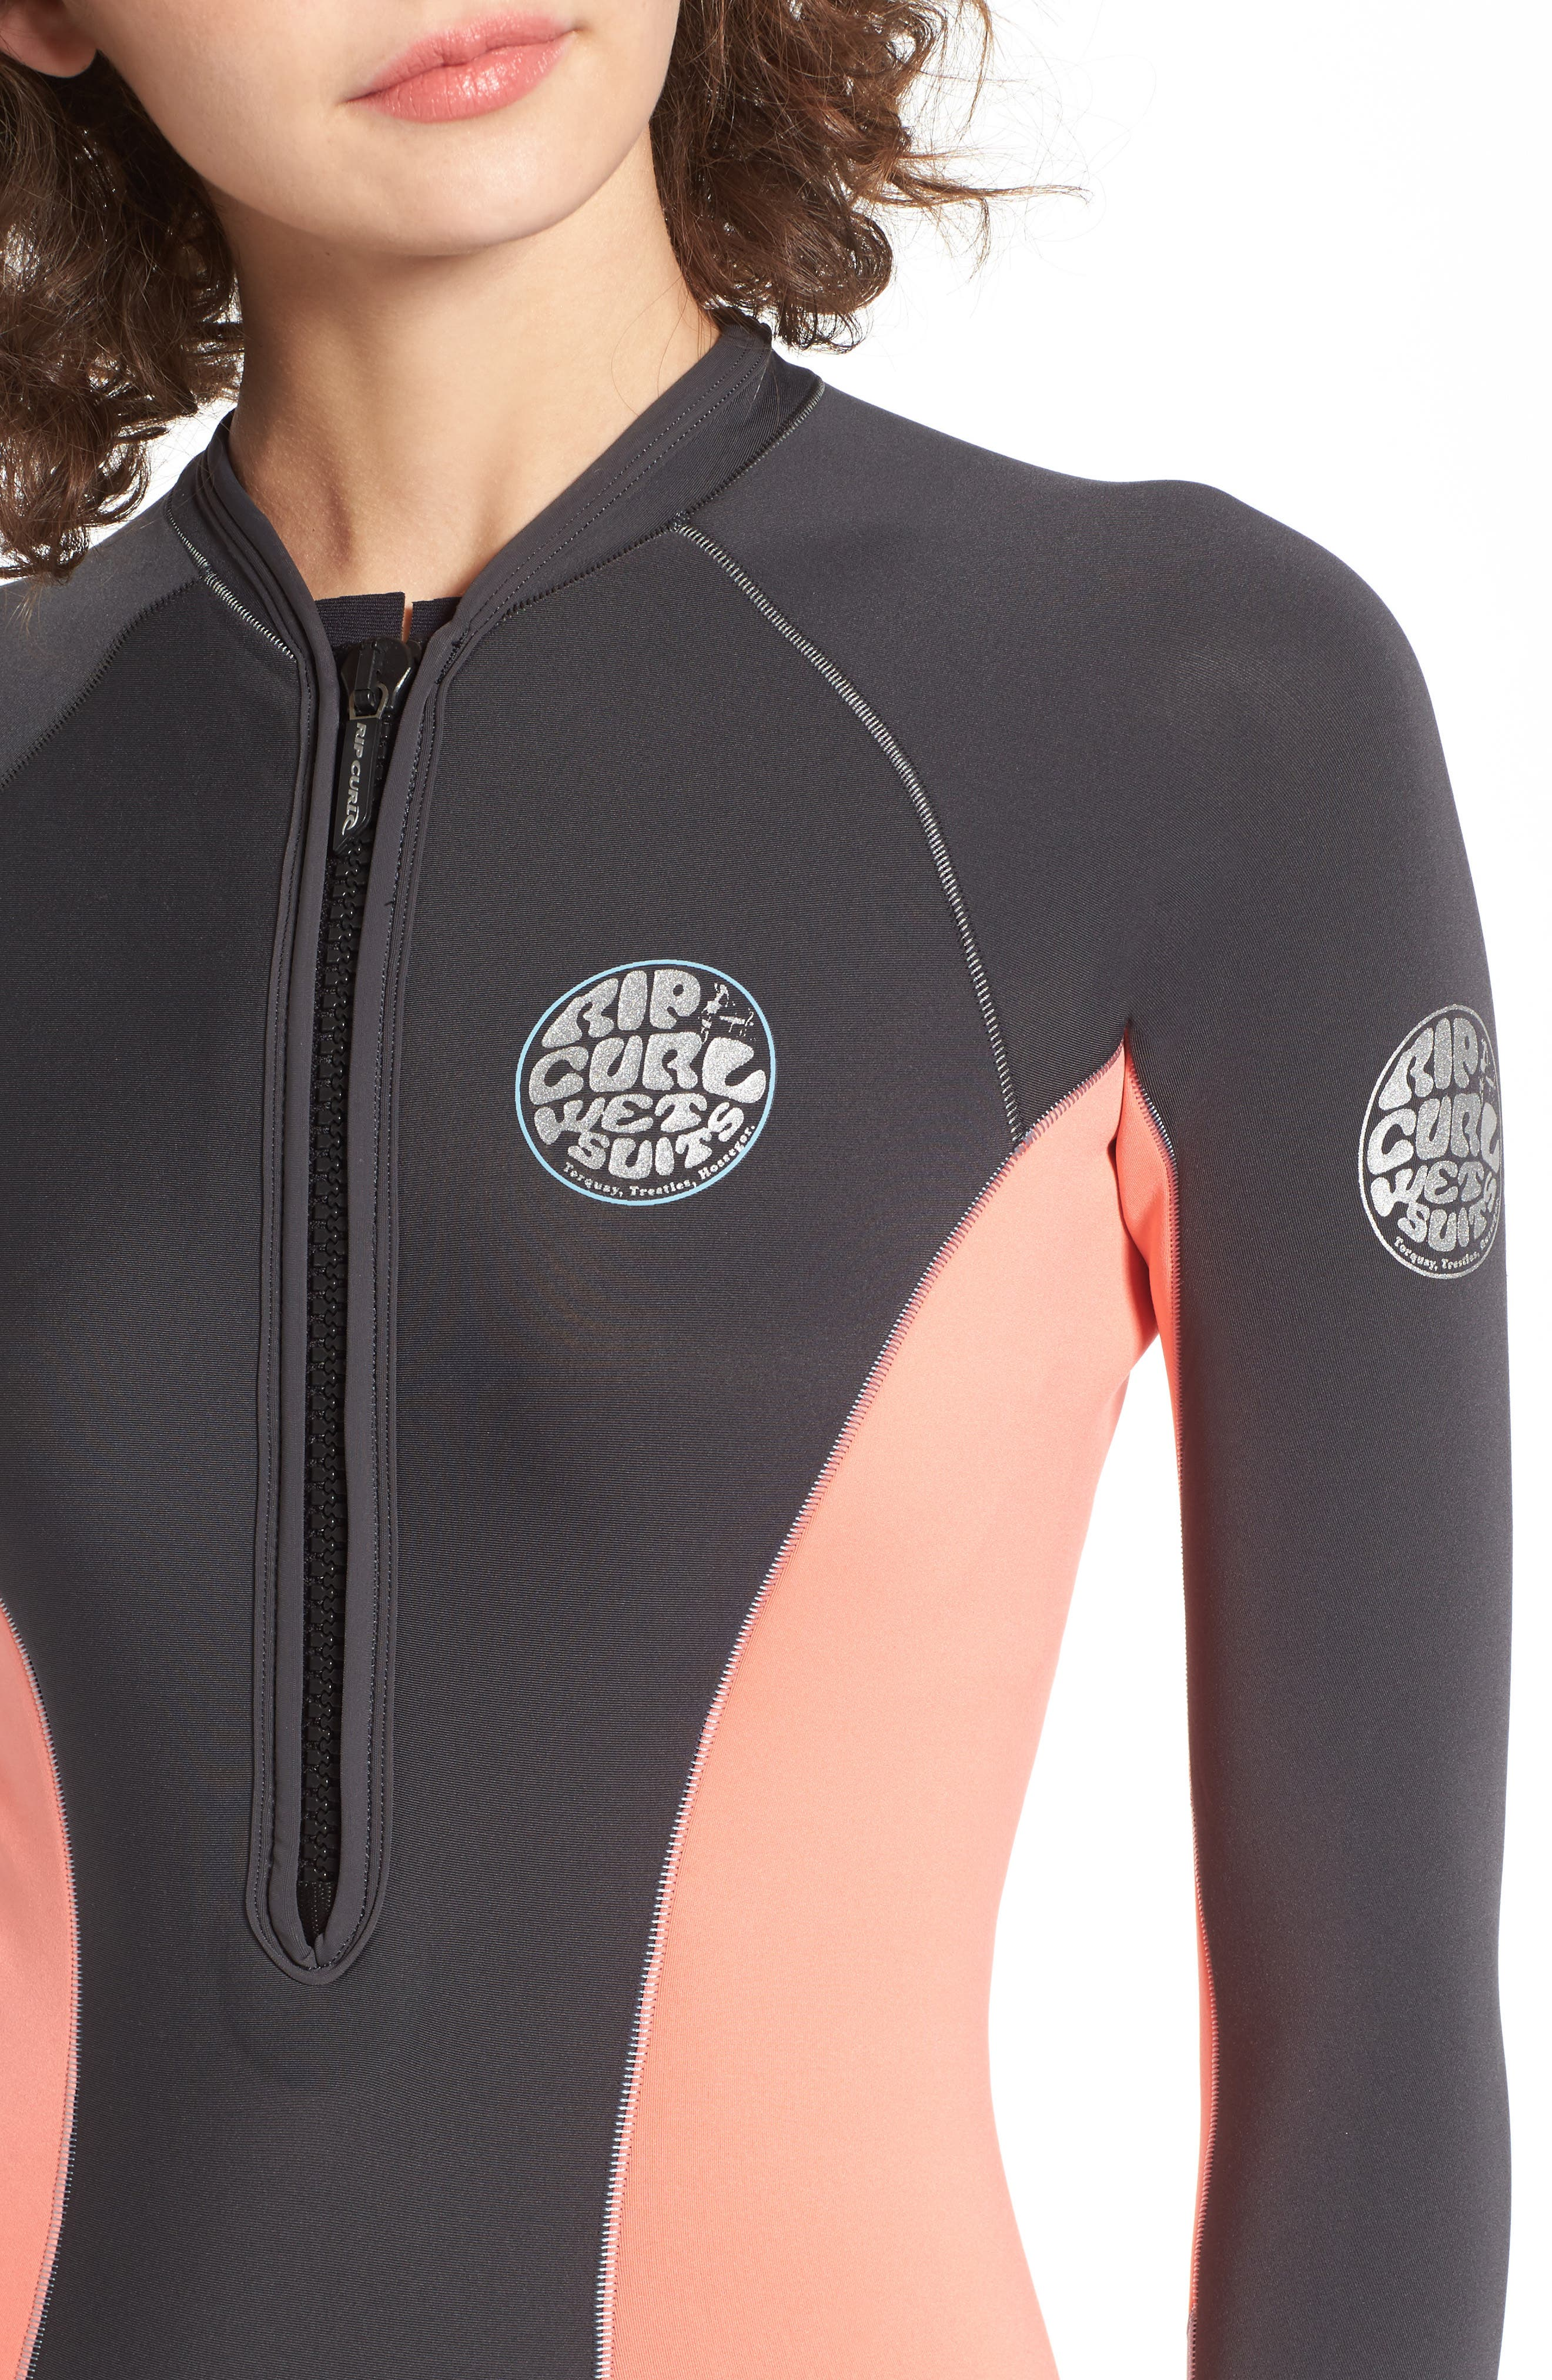 G-Bomb Long Sleeve Wetsuit,                             Alternate thumbnail 4, color,                             Coral